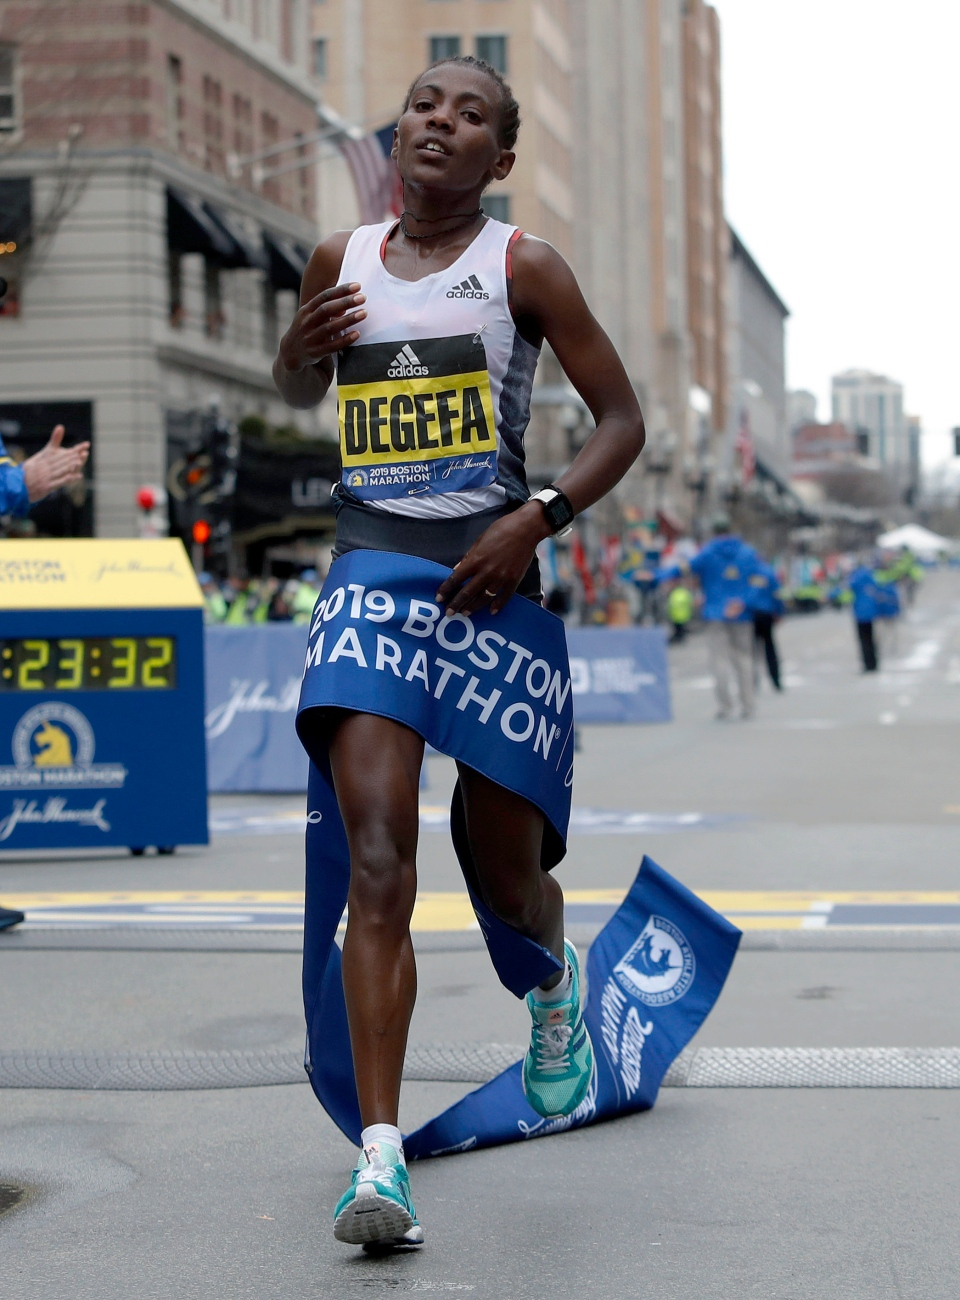 Worknesh Degefa, of Ethiopia, breaks the tape to win the women's division of the 123rd Boston Marathon on Monday, April 15, 2019, in Boston. (AP Photo/Winslow Townson)